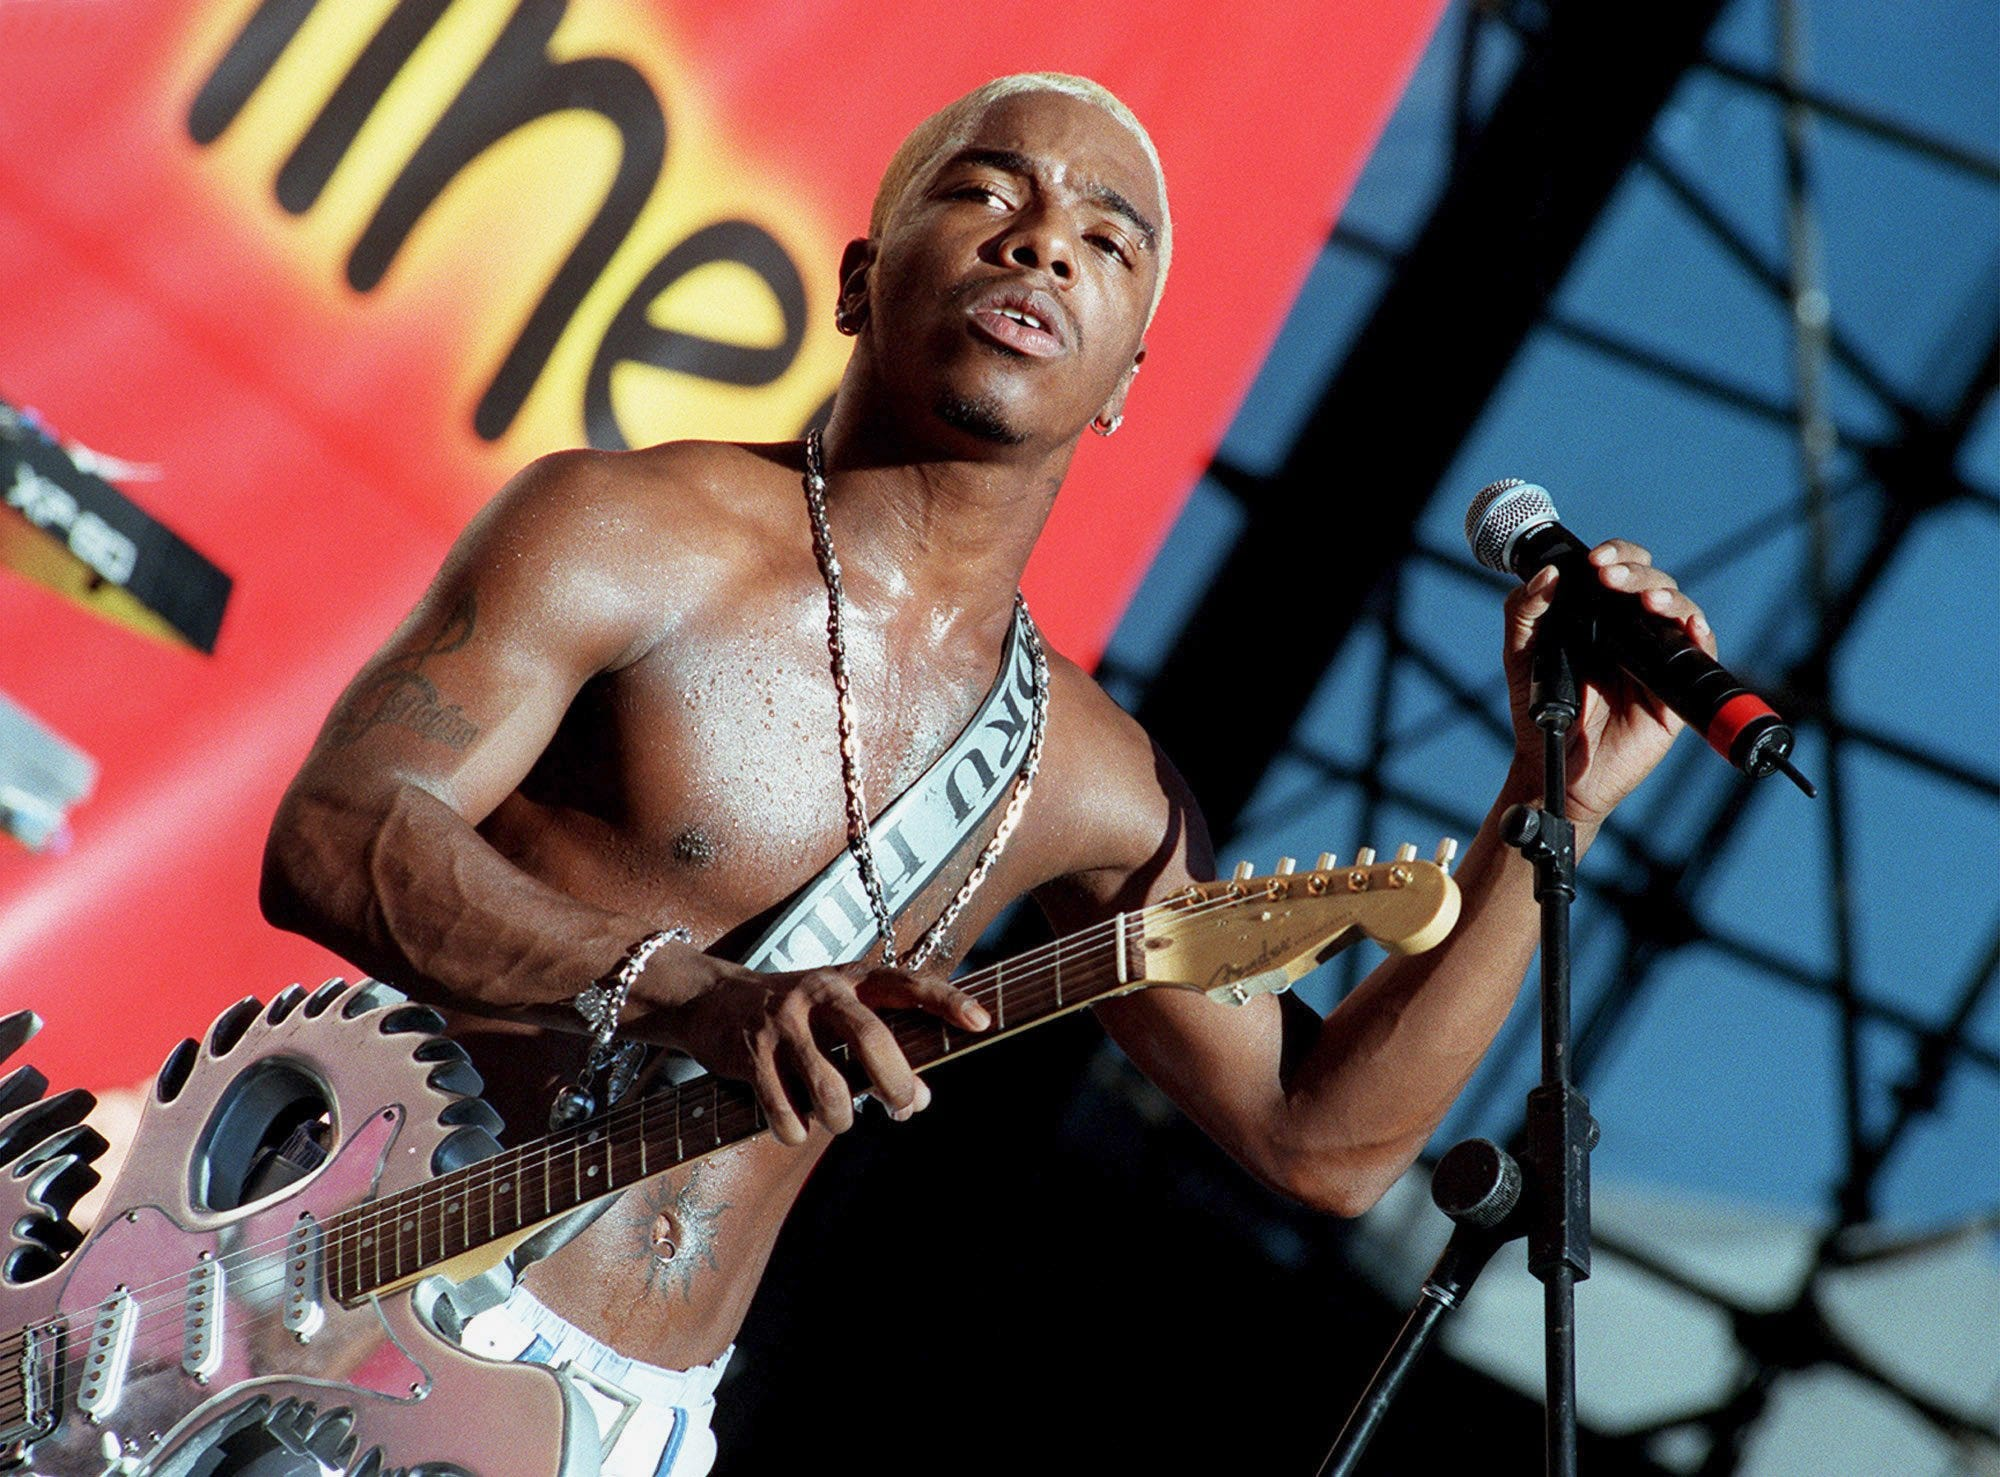 Sisqo (given name: Mark Andrews) onstage during the' 90s heyday of Dru Hill.